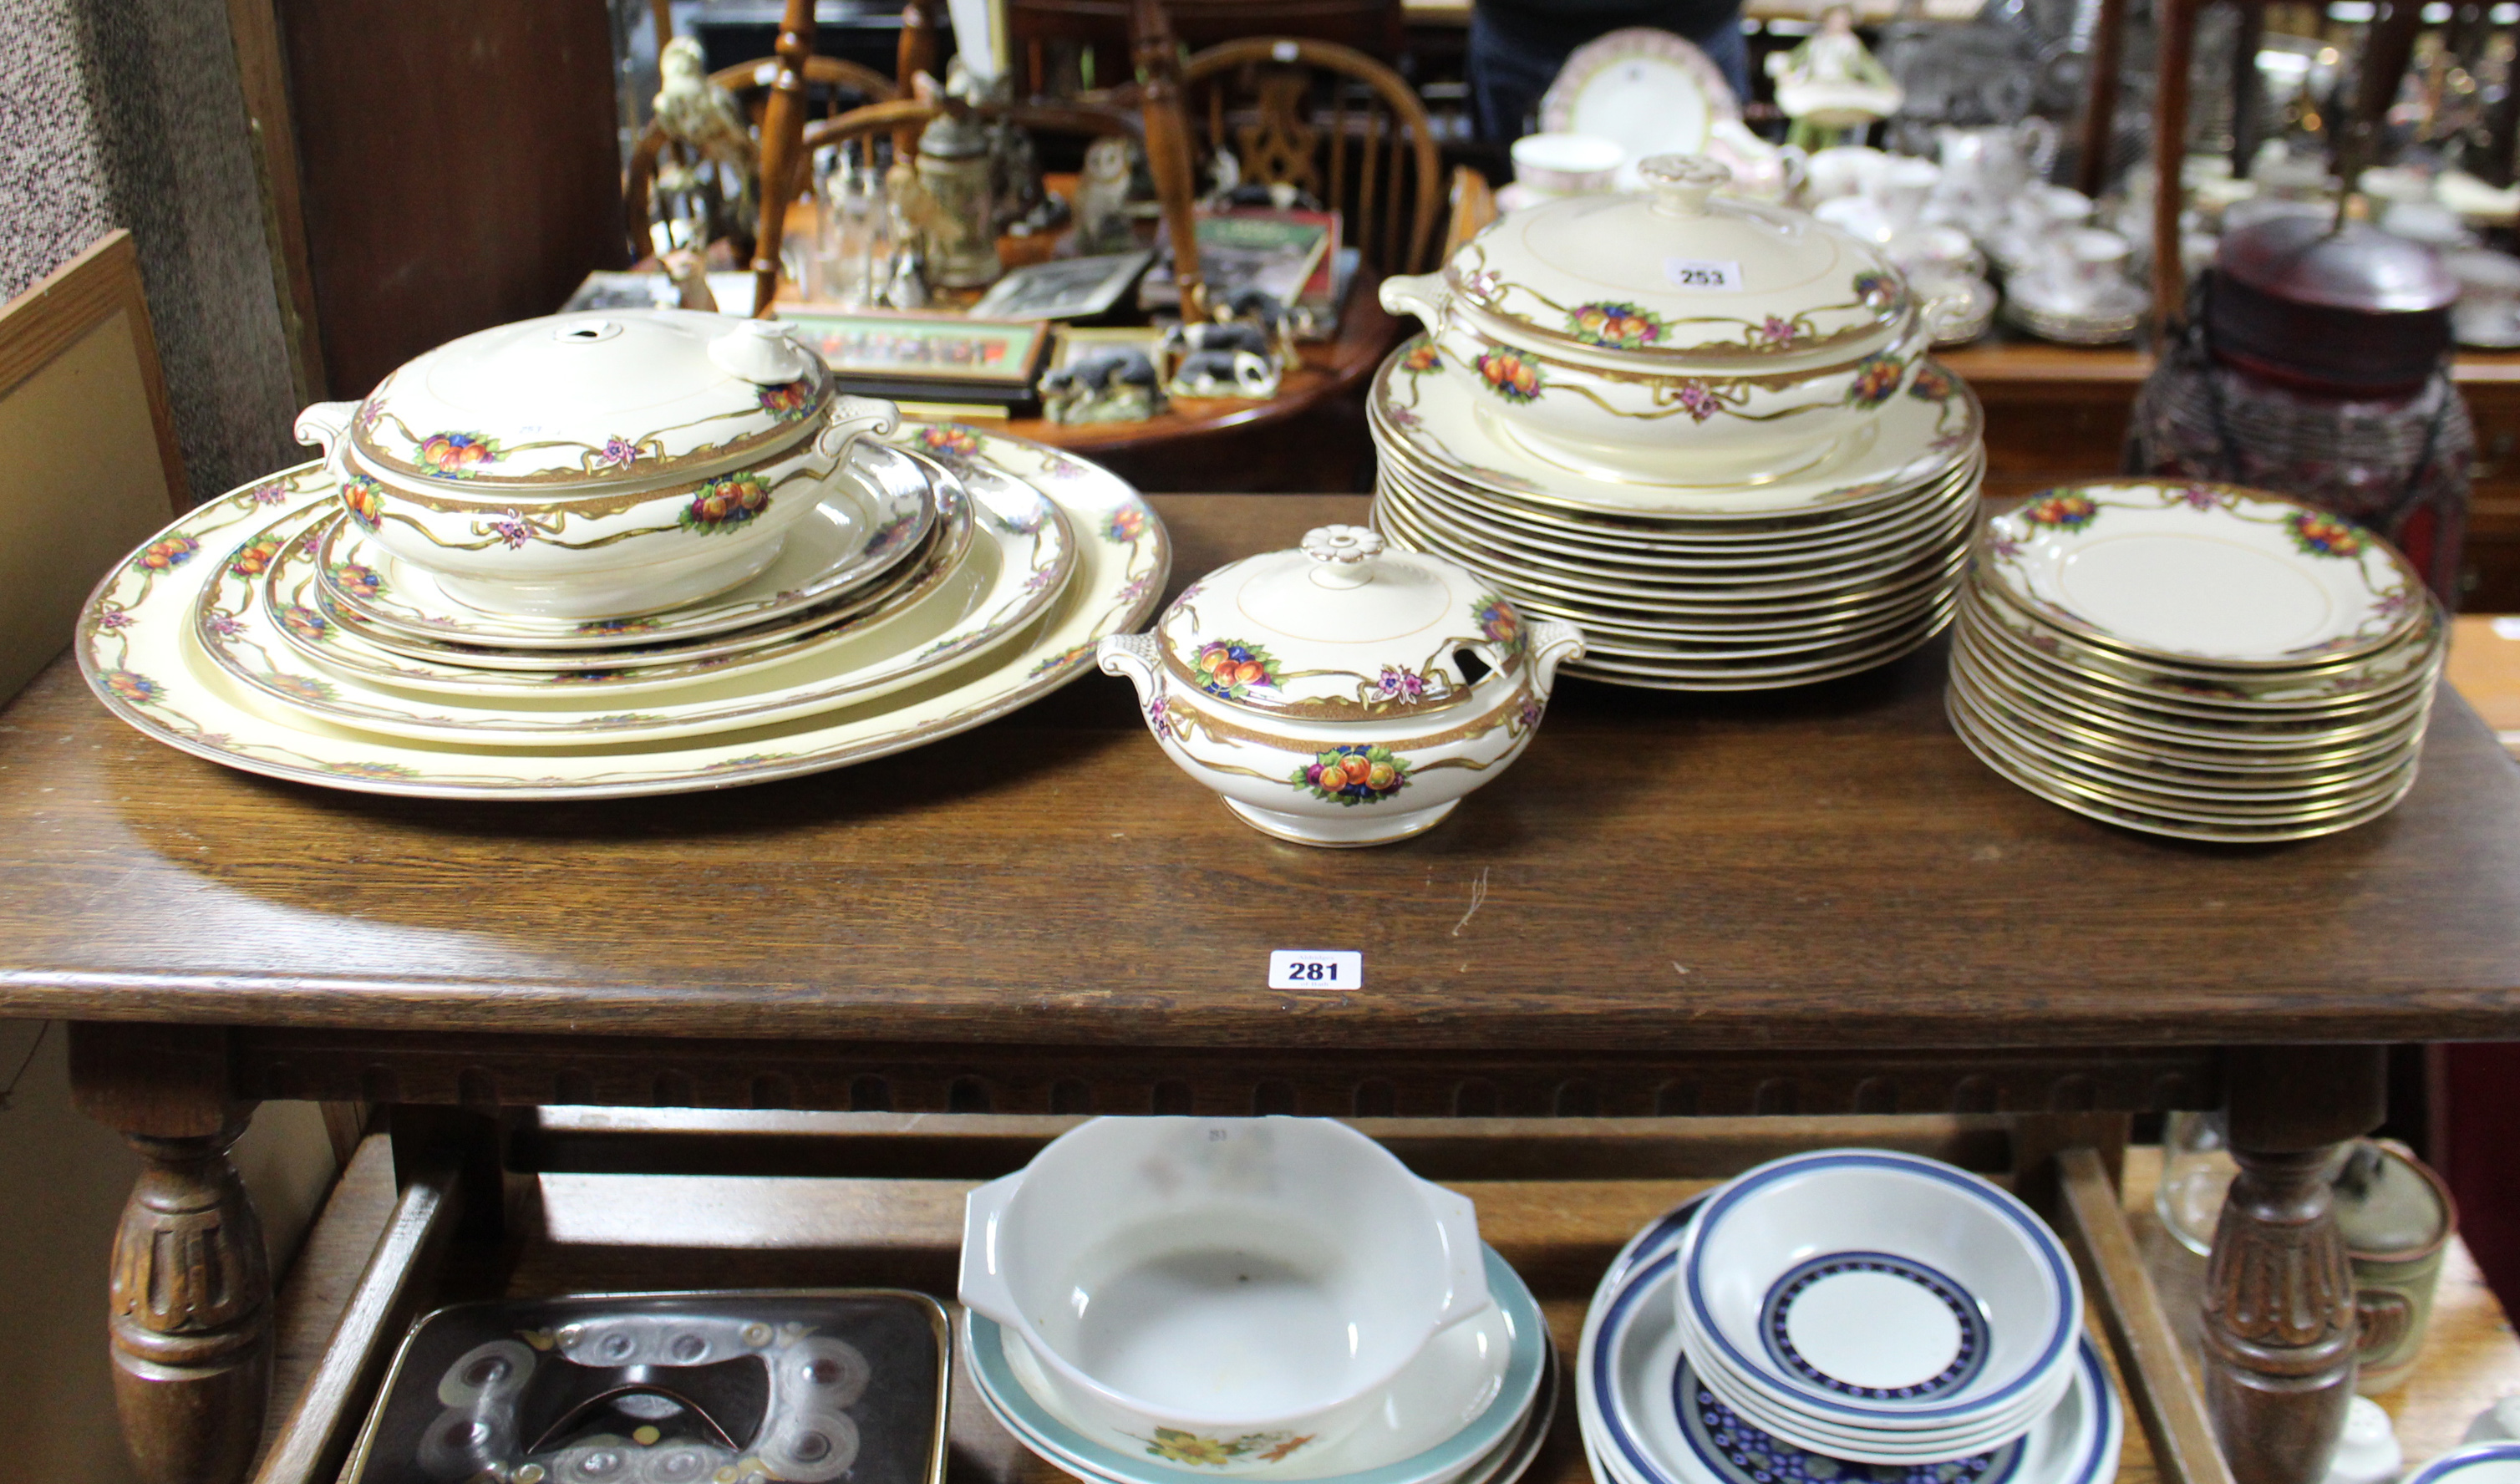 """Lot 253 - A Booth's """"Harvester"""" pattern thirty one piece part dinner service; together with various other"""